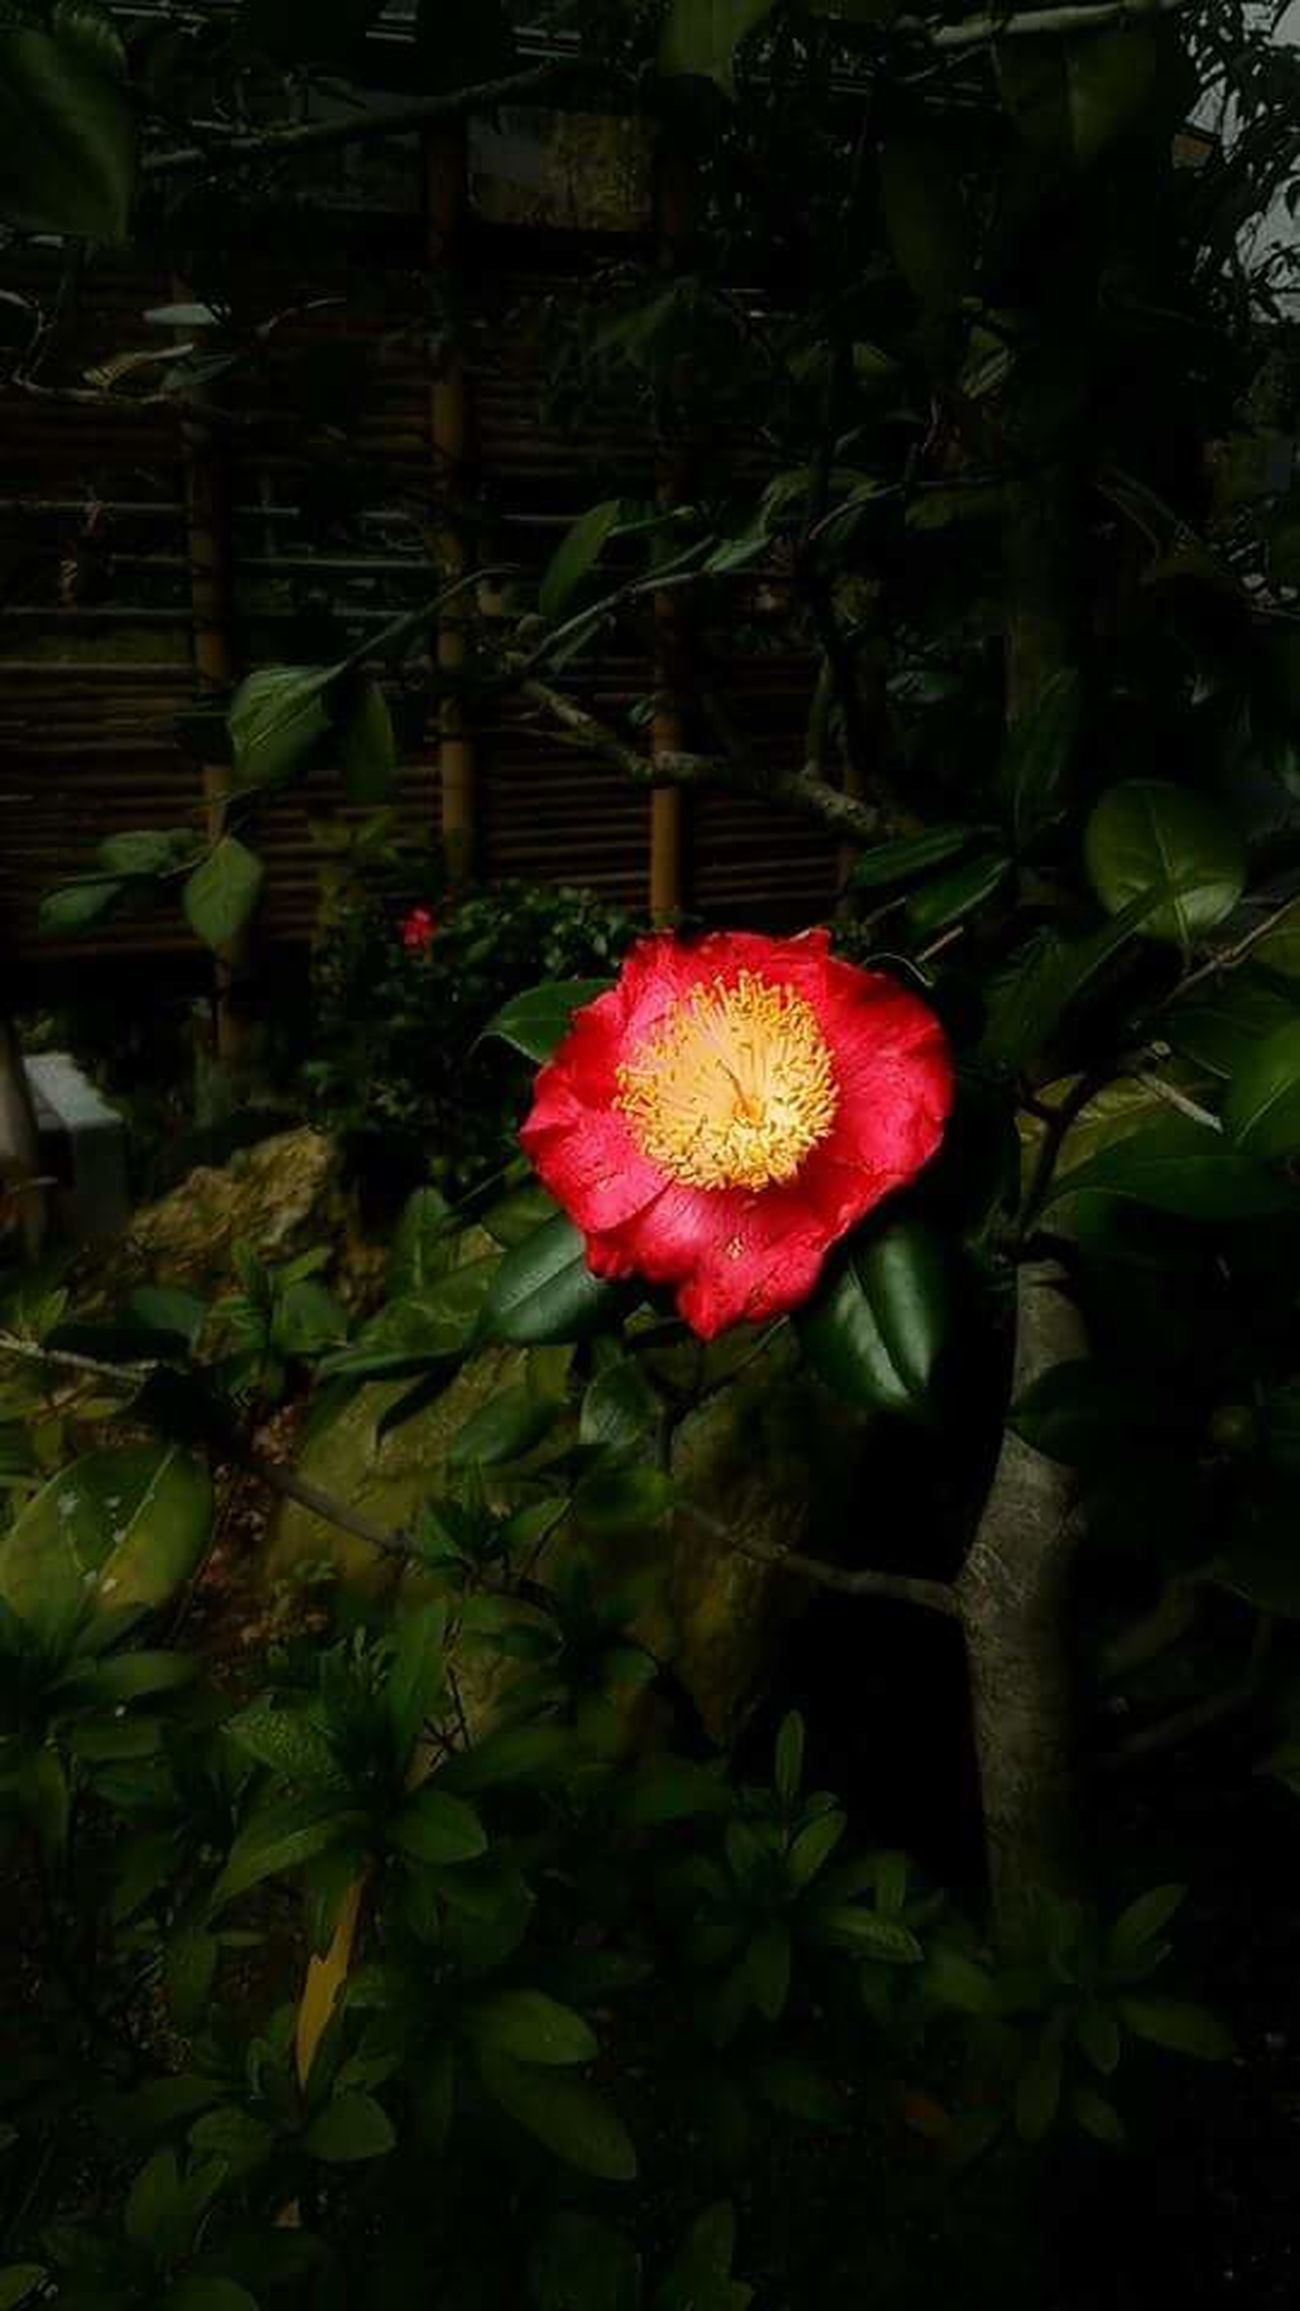 Taking Photos AndroidPhotography Flower Collection Camellia Red Flower